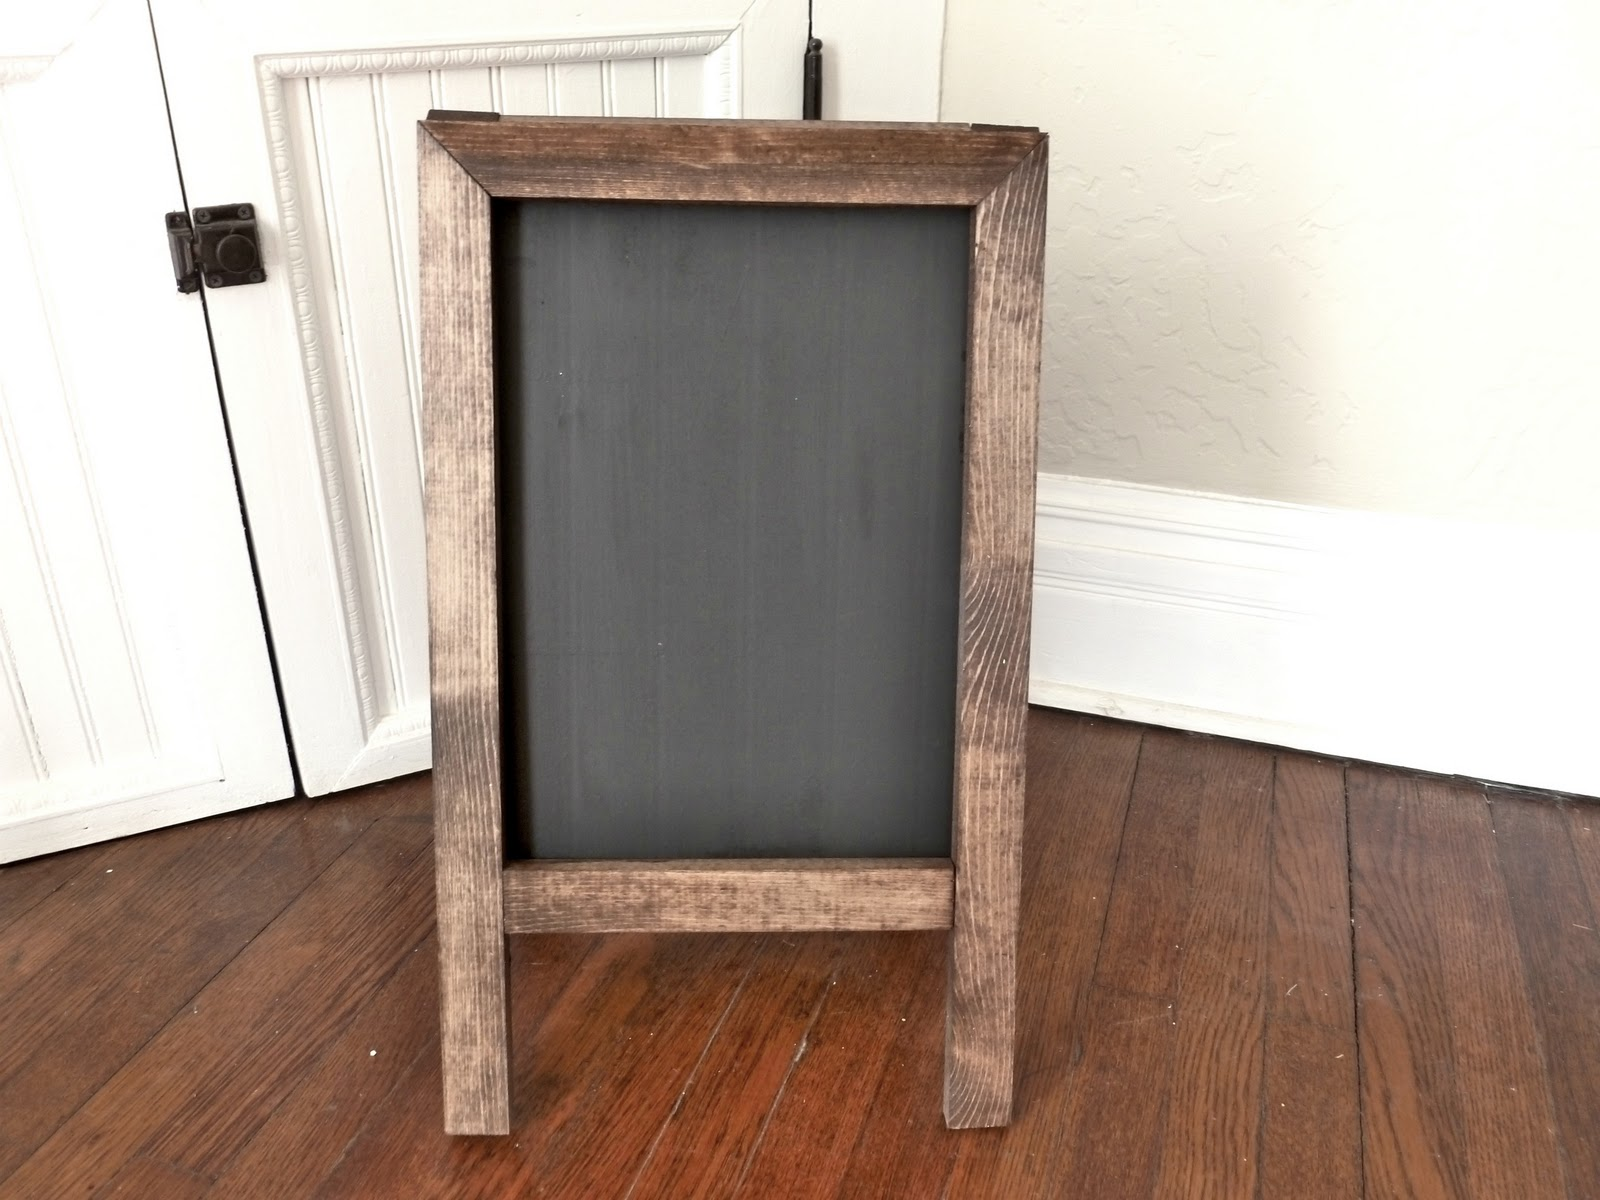 Rustic Home State Picture Frame Holder